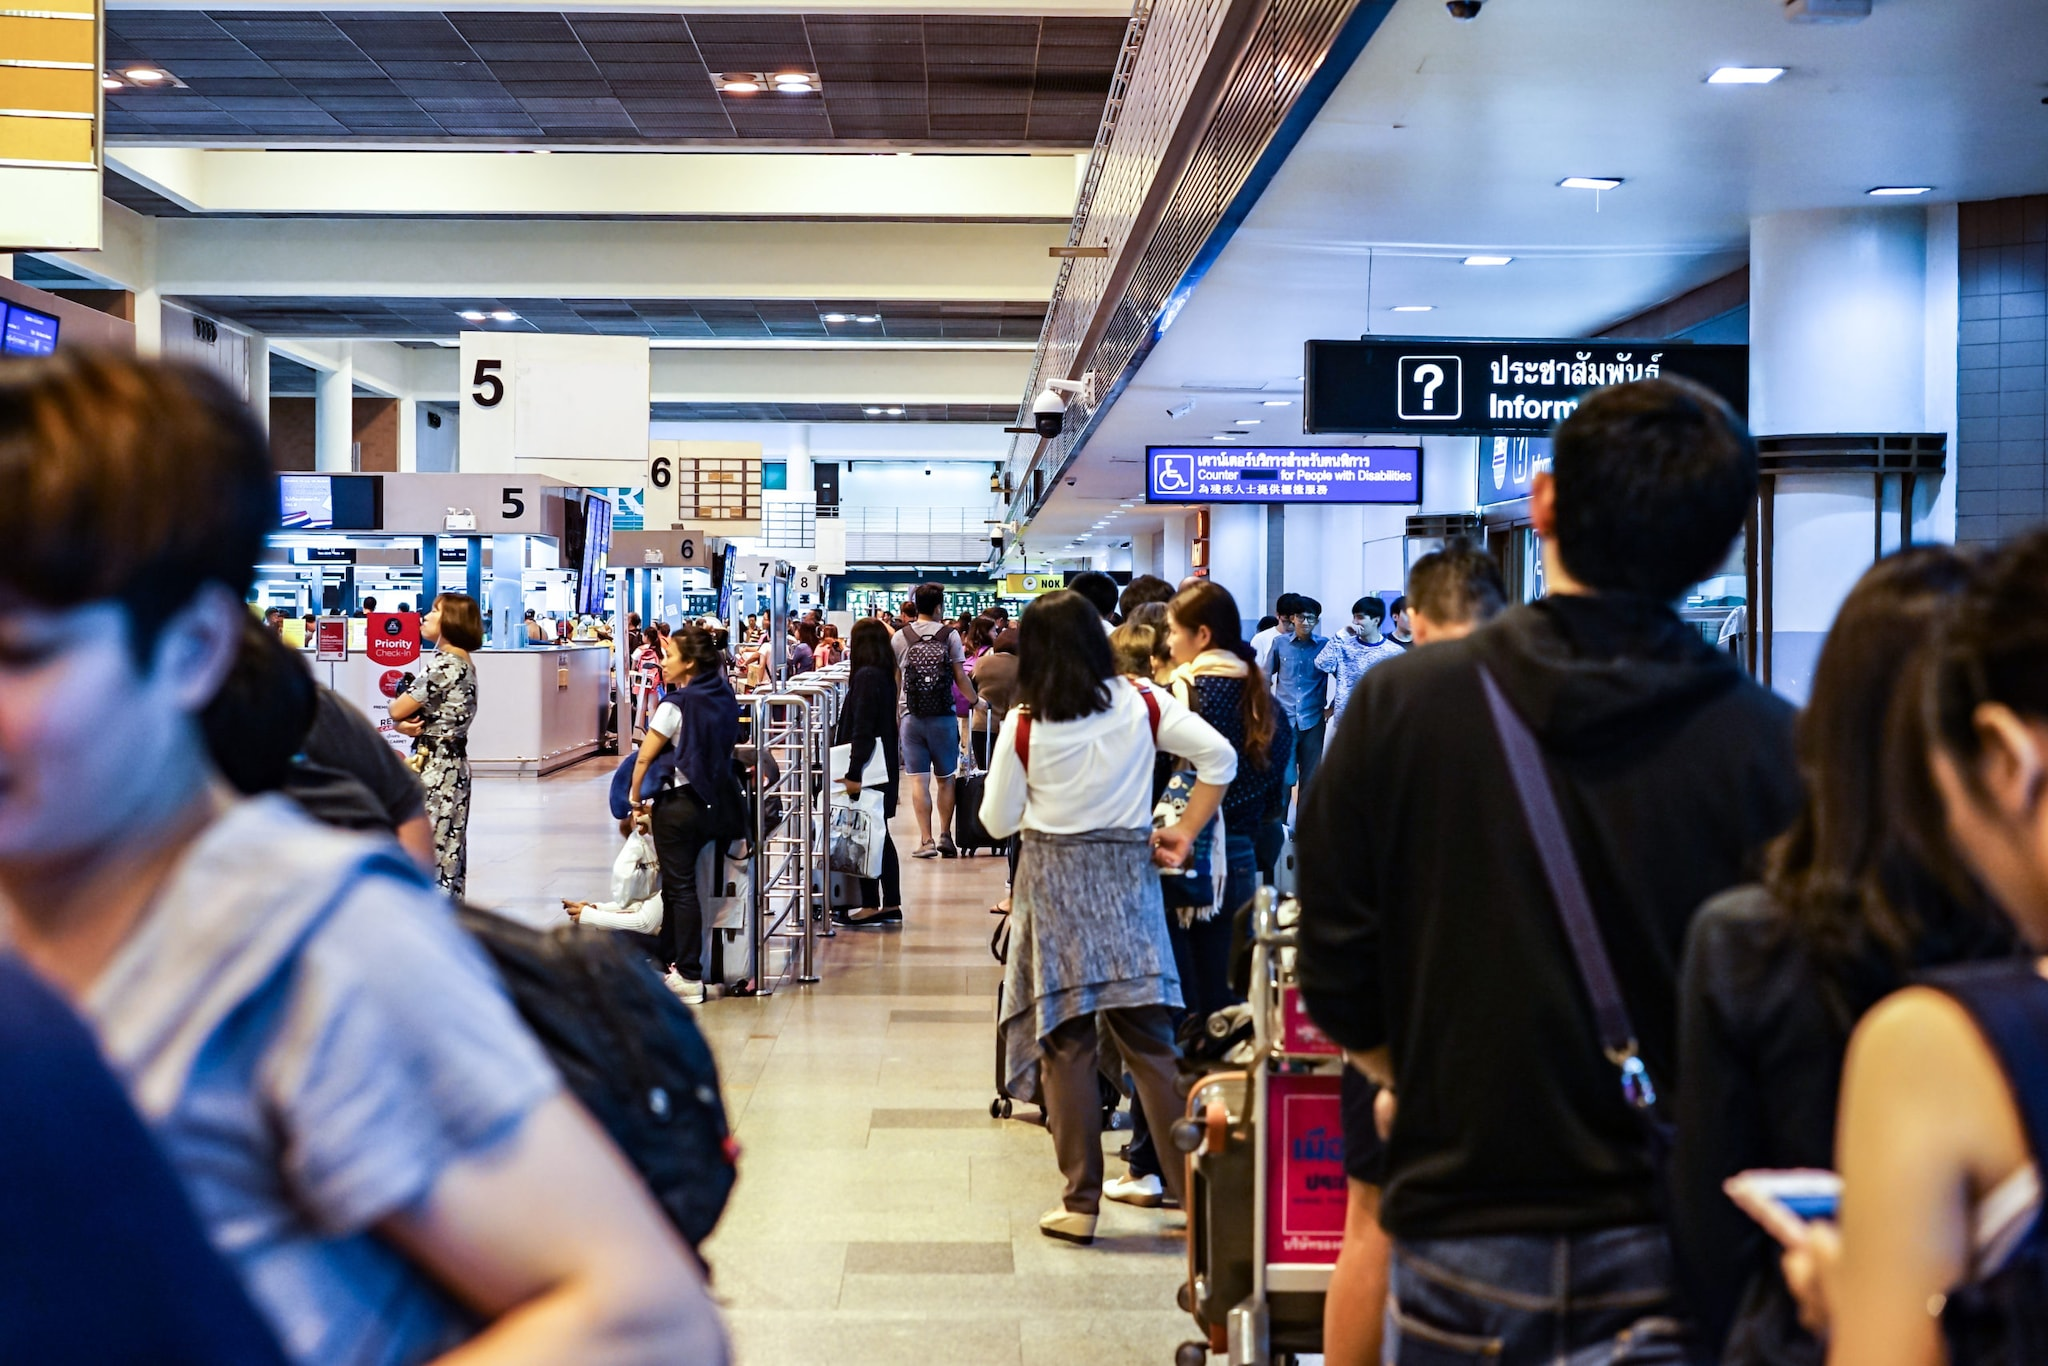 Travellers and passengers in the line are waiting for check in at Donmuang International Airport, Bangkok, Thailand